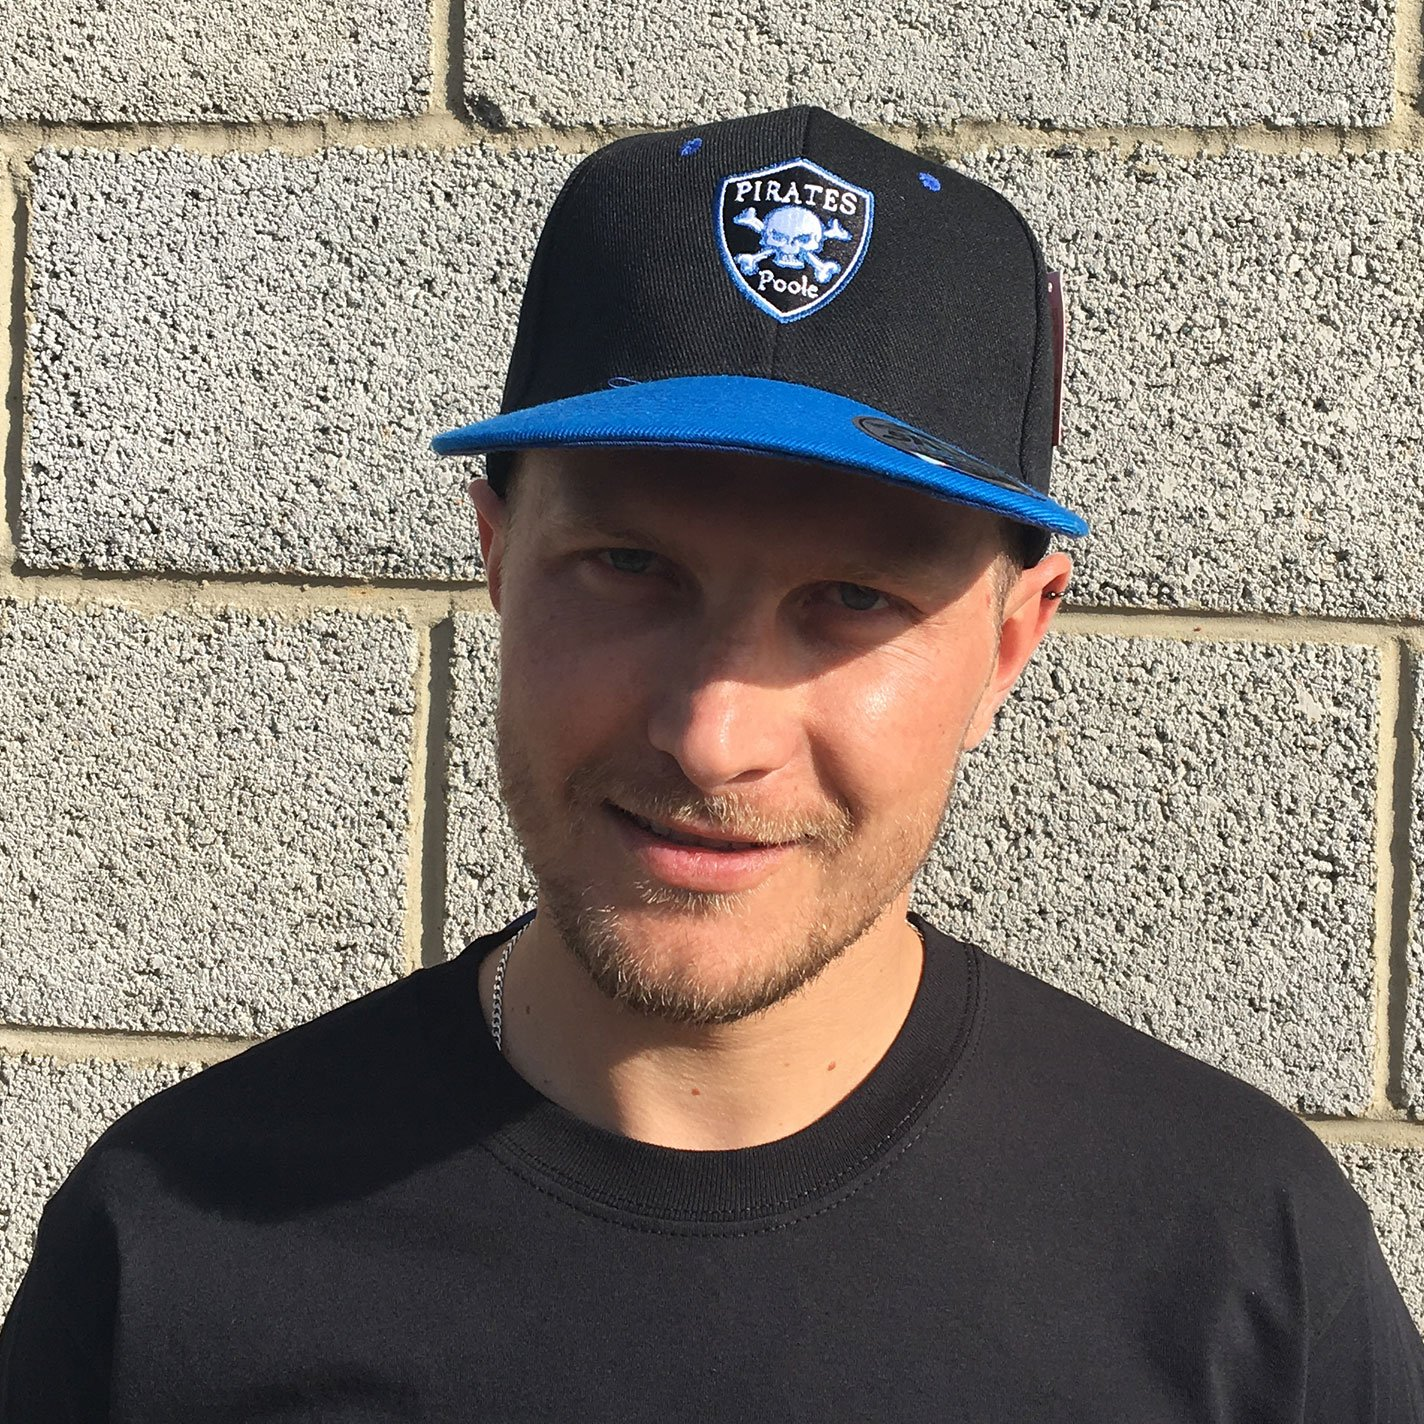 Poole Pirates Shield Flat Peak Cap